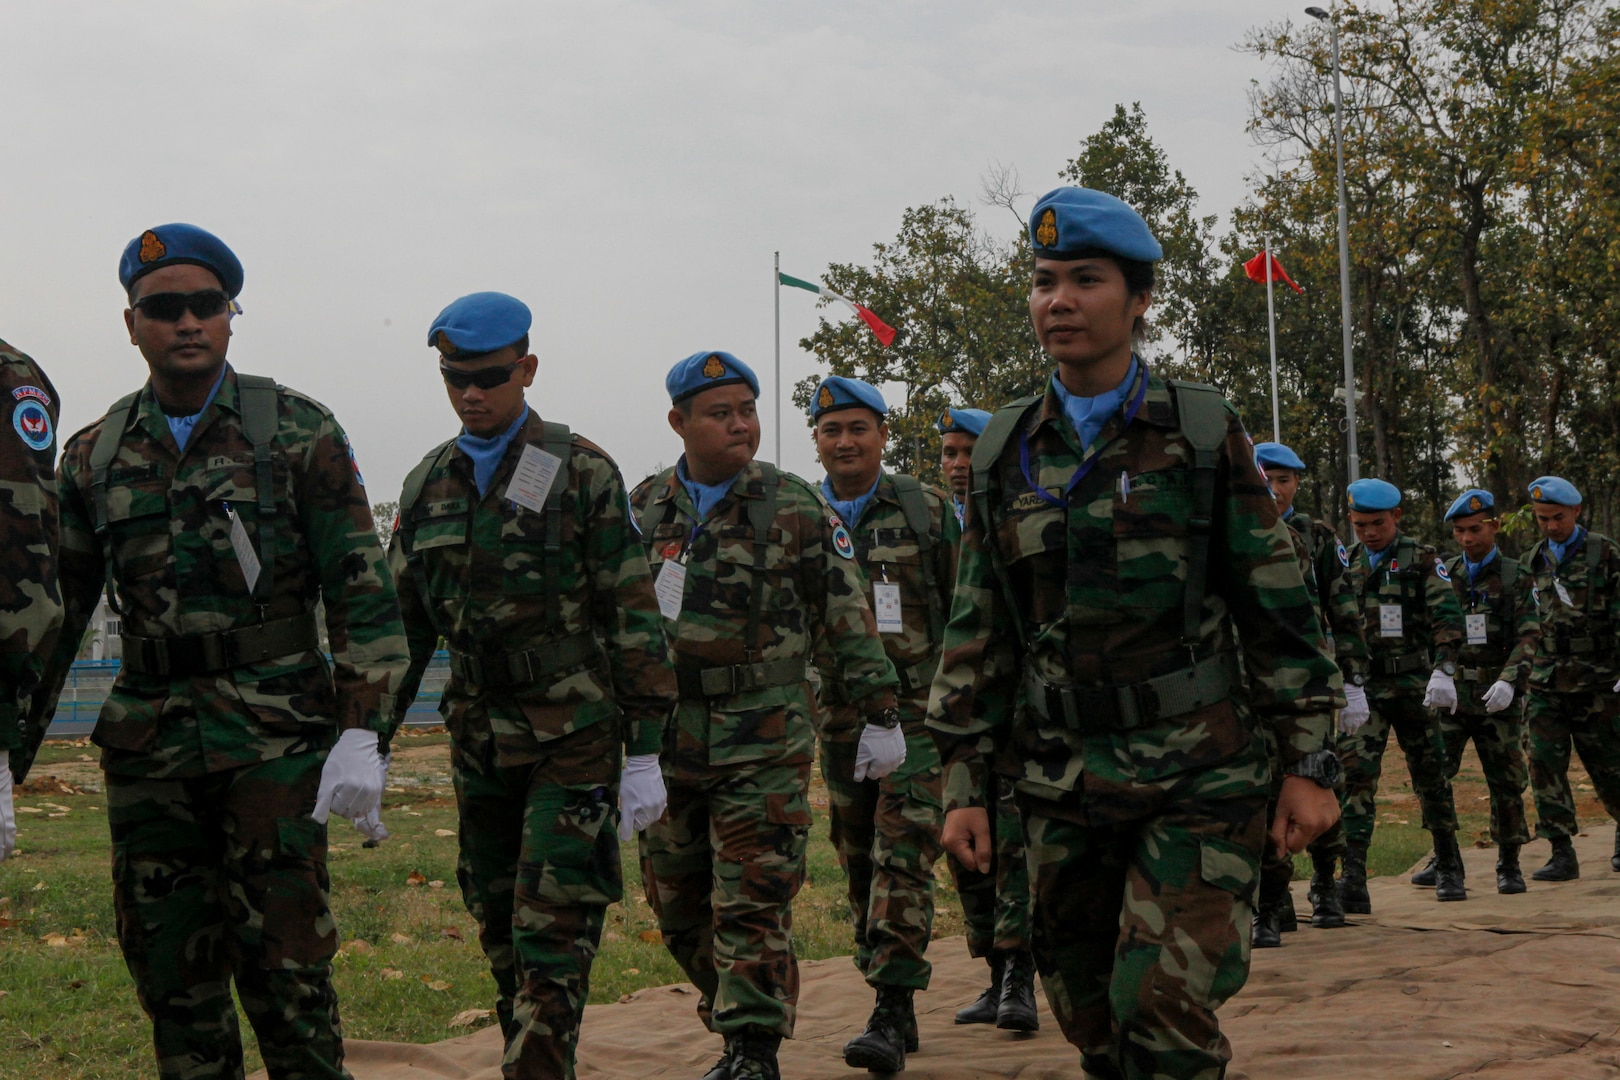 Cambodian service members arrive at the opening ceremony for exercise Shanti Doot 4 in Bangladesh.